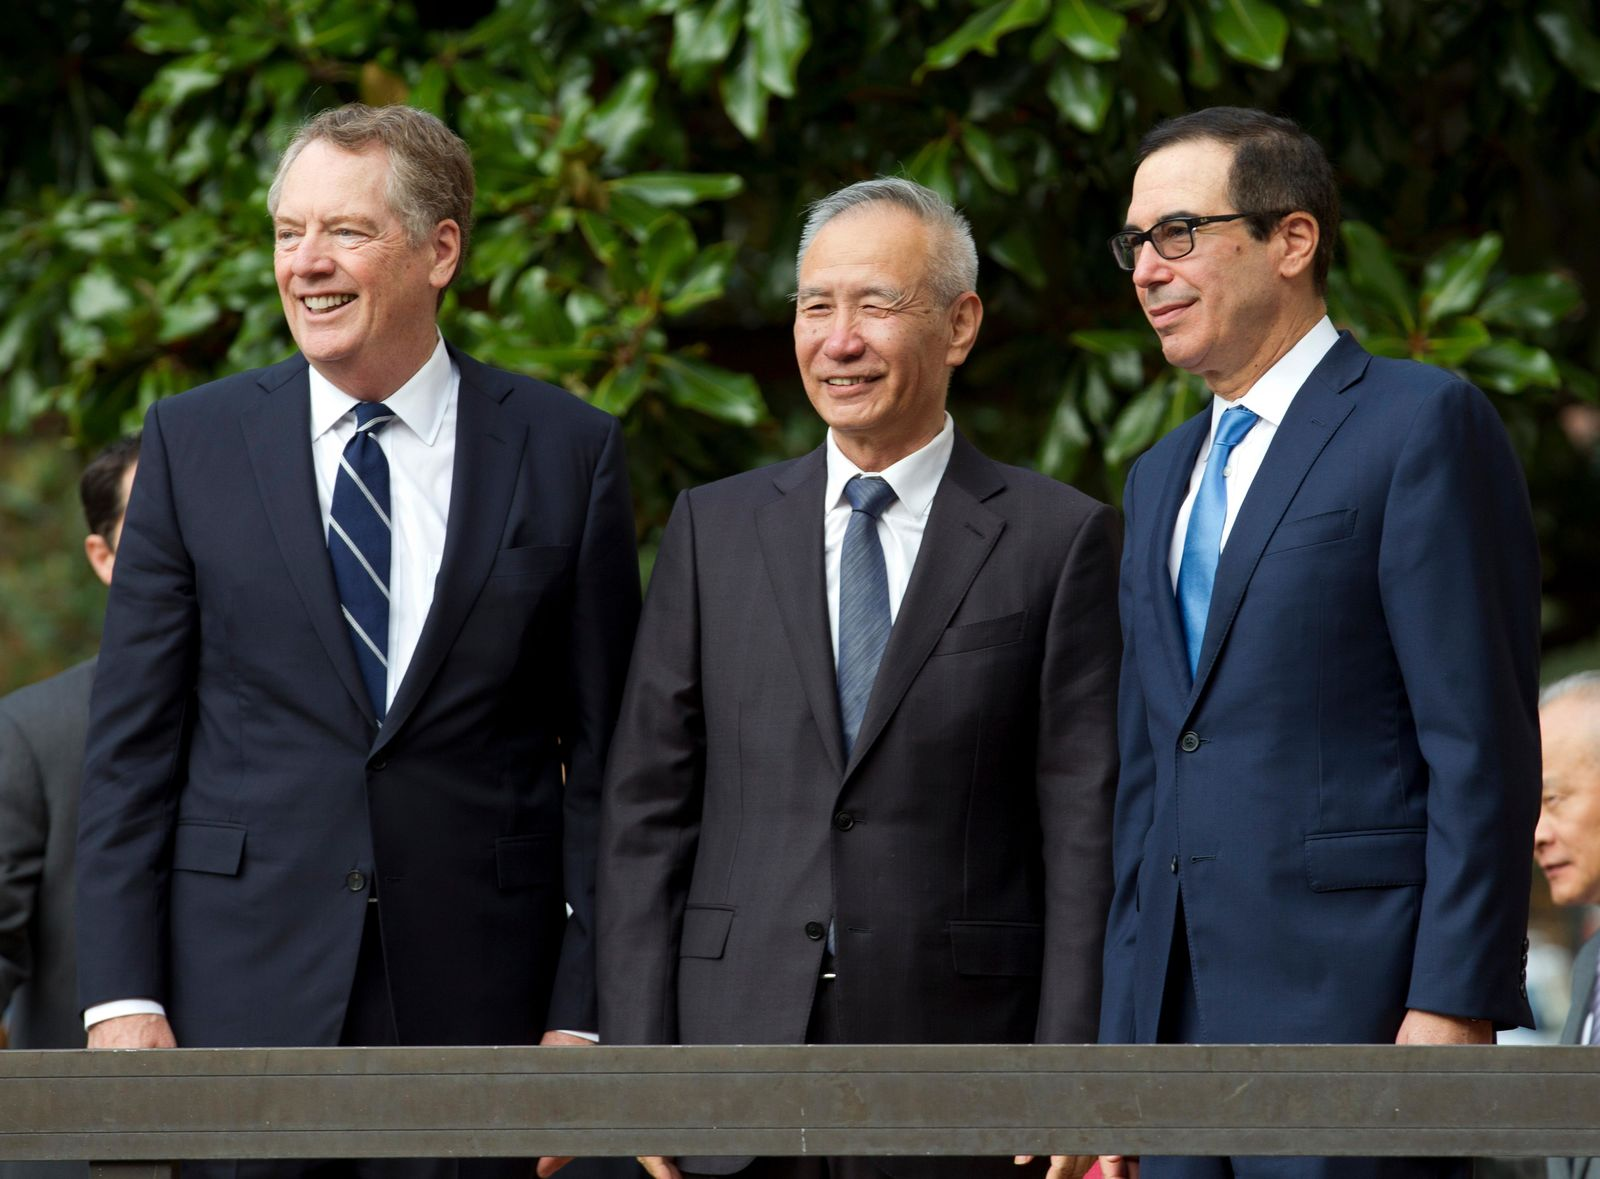 Chinese Vice Premier Liu He accompanied by U.S. Trade Representative Robert Lighthizer, left, and Treasury Secretary Steven Mnuchin, greets the media before a minister-level trade meetings at the Office of the United States Trade Representative in Washington, Thursday, Oct. 10, 2019. (AP Photo/Jose Luis Magana)